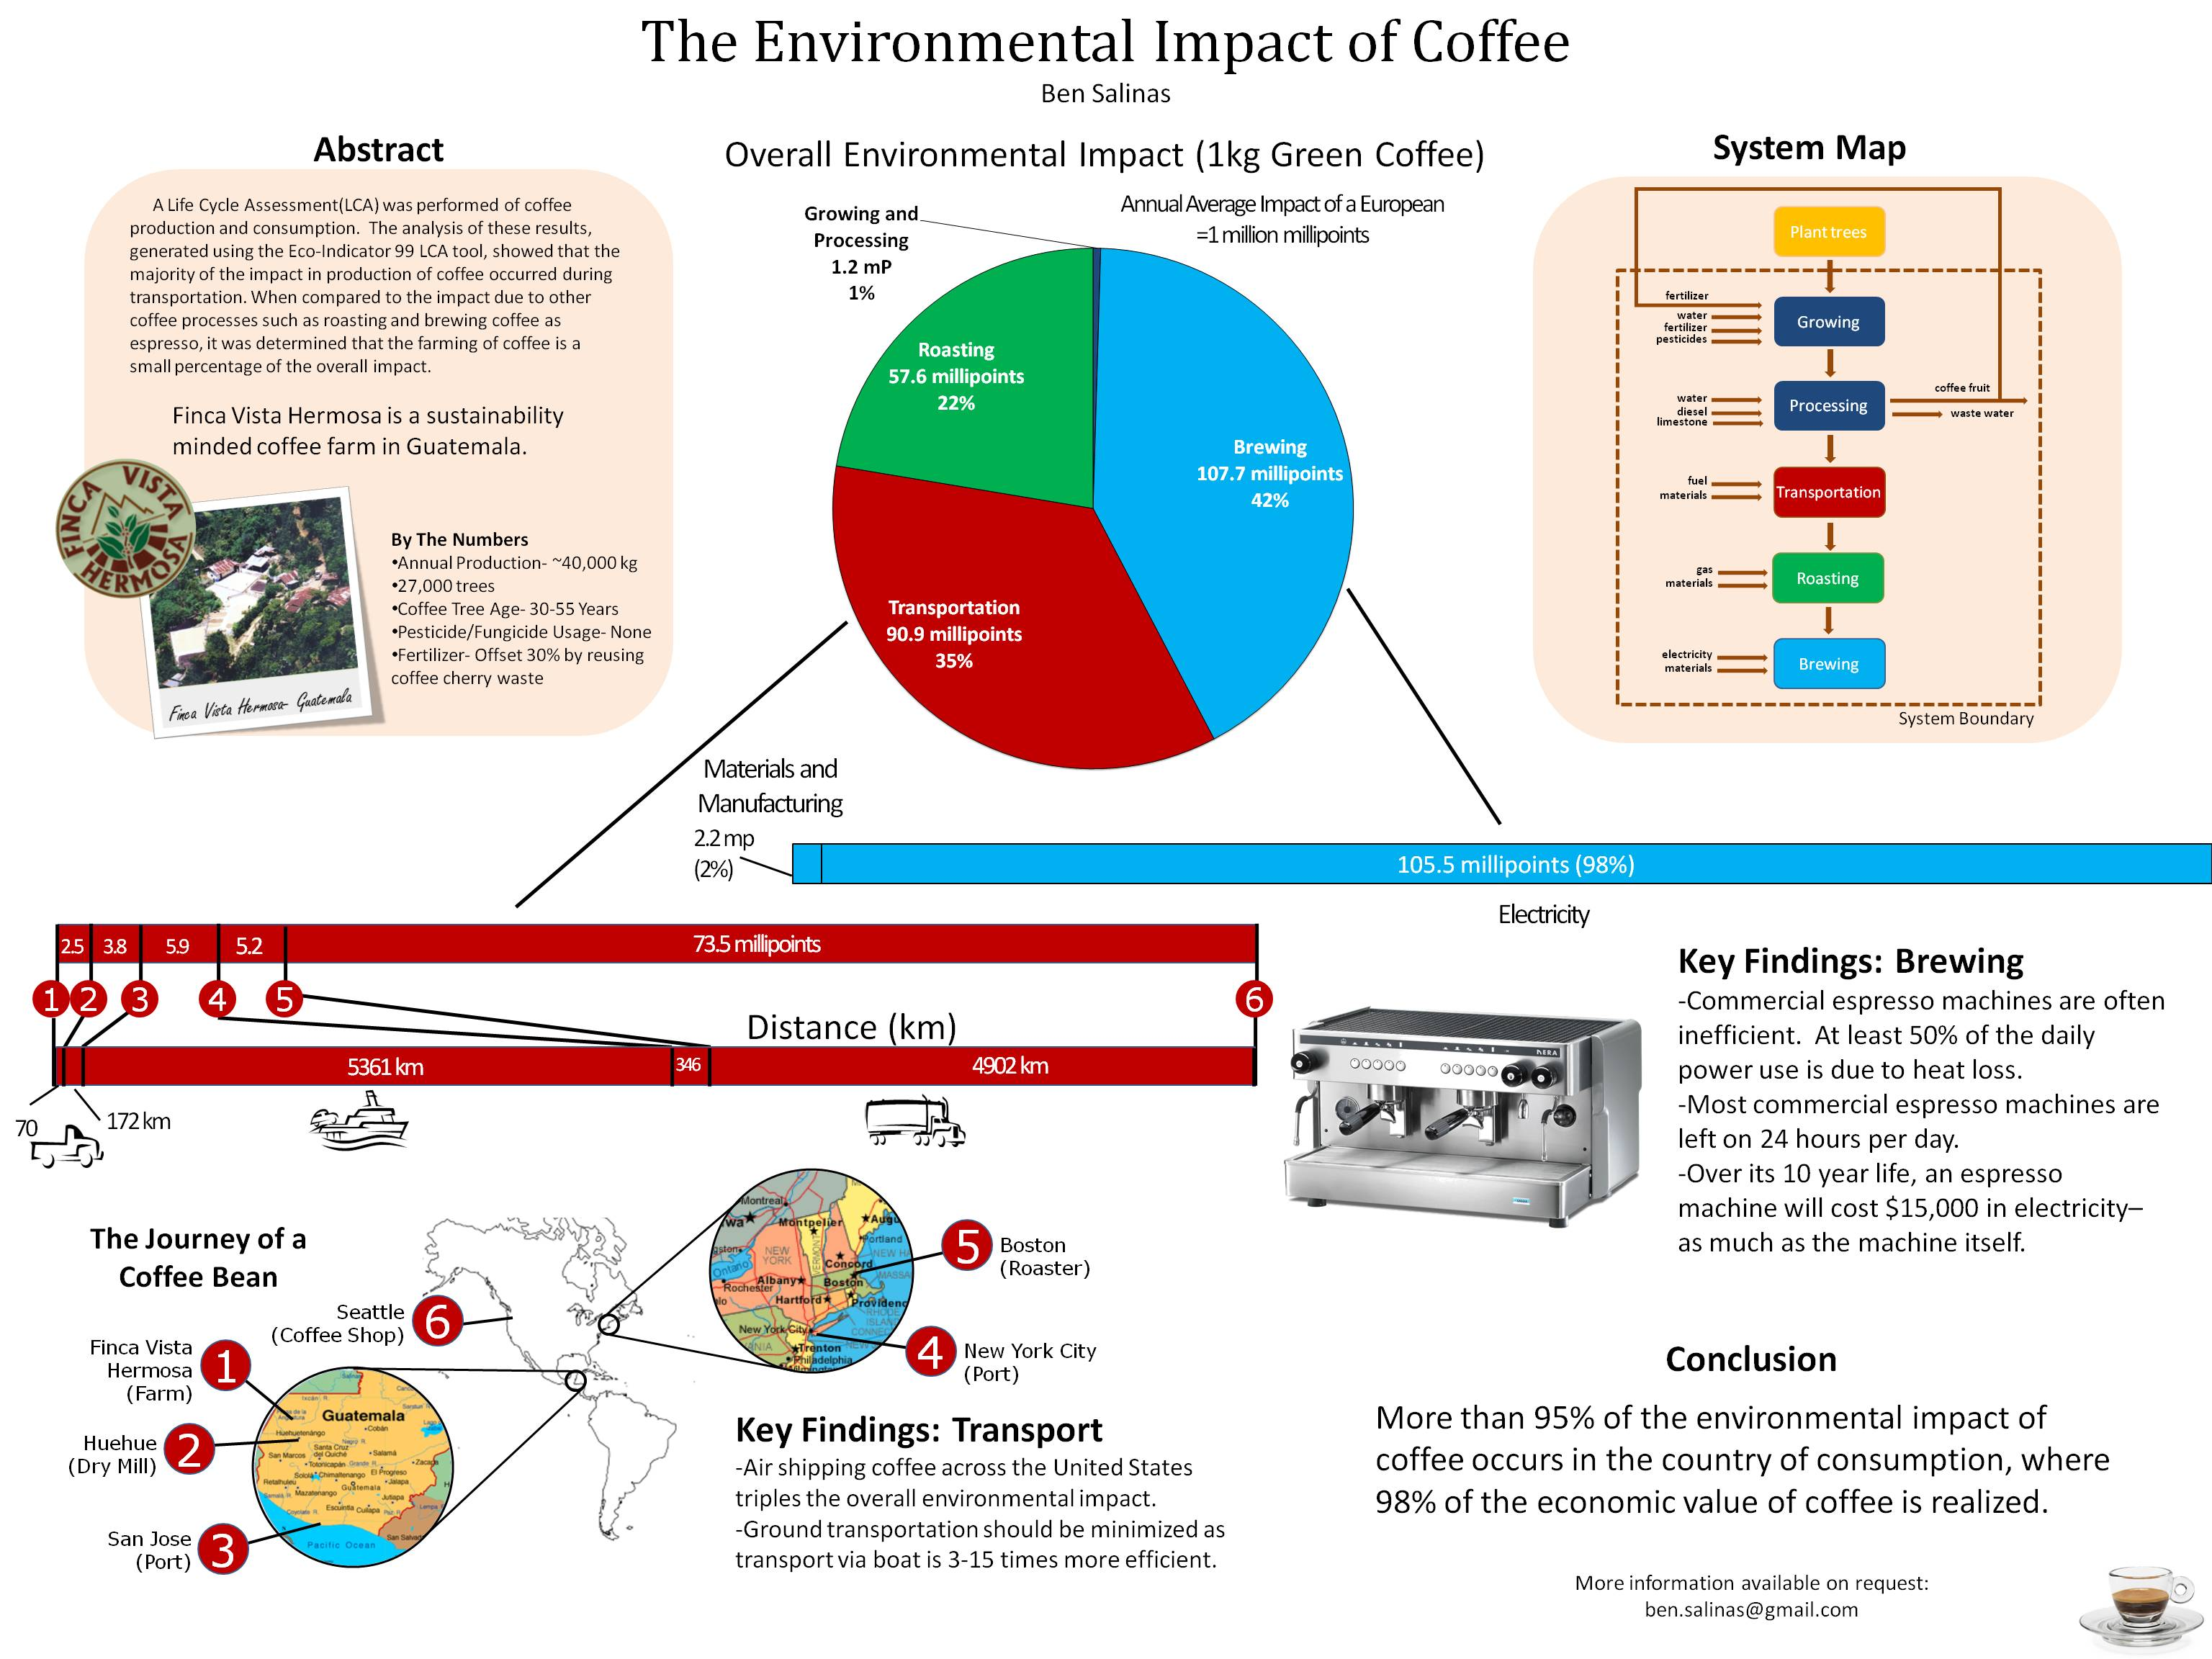 progression of economic value for coffee Consumers just want their coffee drinks -- at what would have been considered an outrageous price only a few years ago another example of the progression of economic value is birthday parties half a century ago, mothers made birthday cakes from scratch with butter, sugar, eggs, flour, milk, etc those commodities cost maybe fifty cents back then then in the 1960s and 1970s, along came cake mixes and canned frostings.